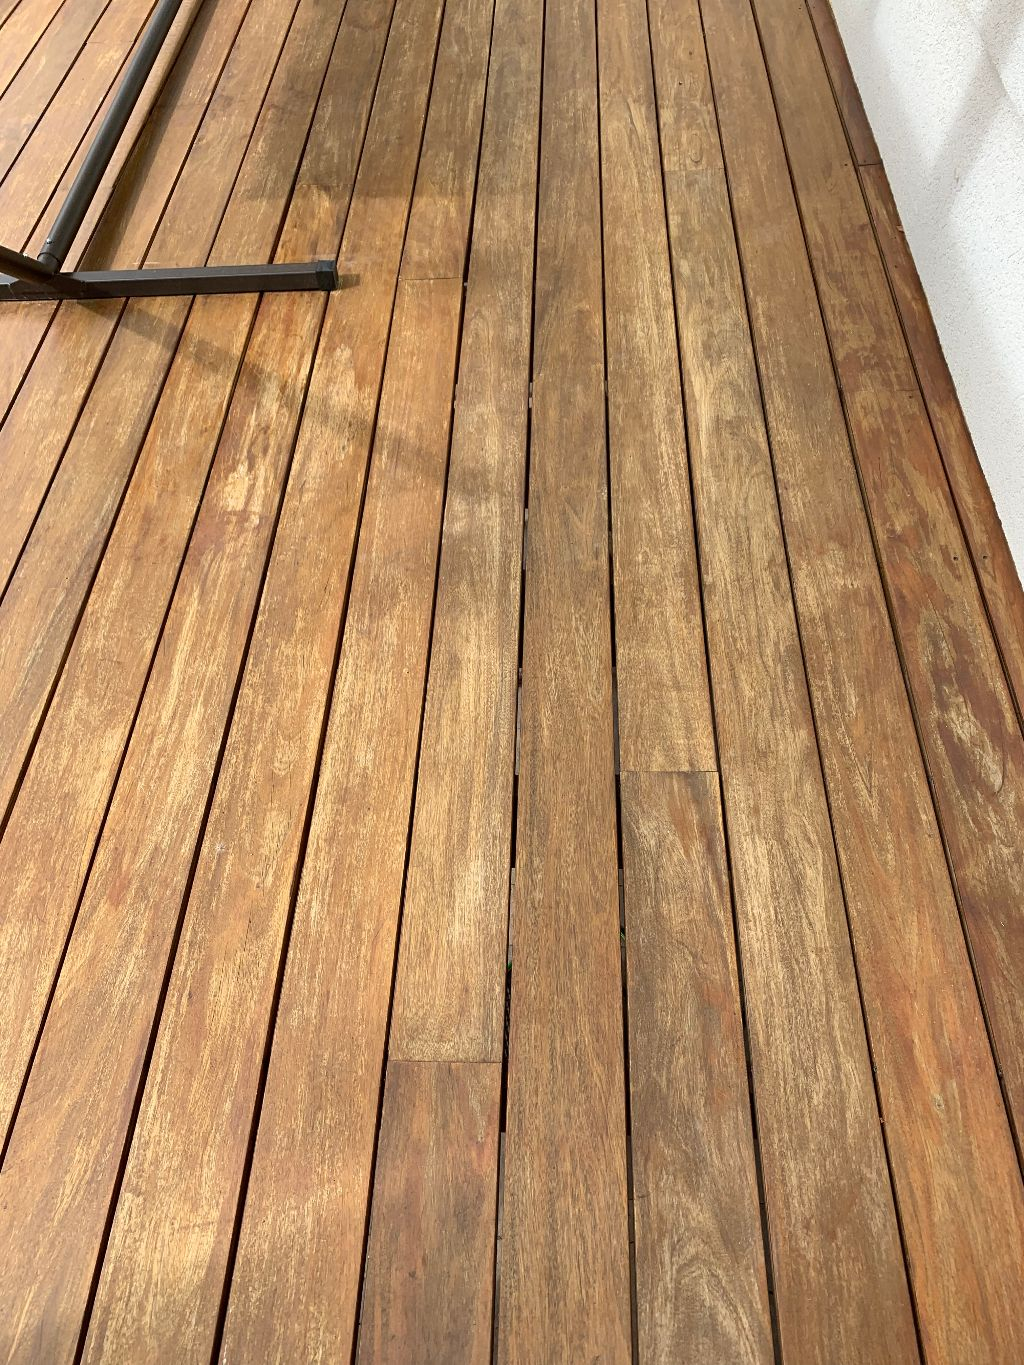 The Best Deck Stains Rated Best Deck Stain Reviews Ratings intended for proportions 1024 X 1365